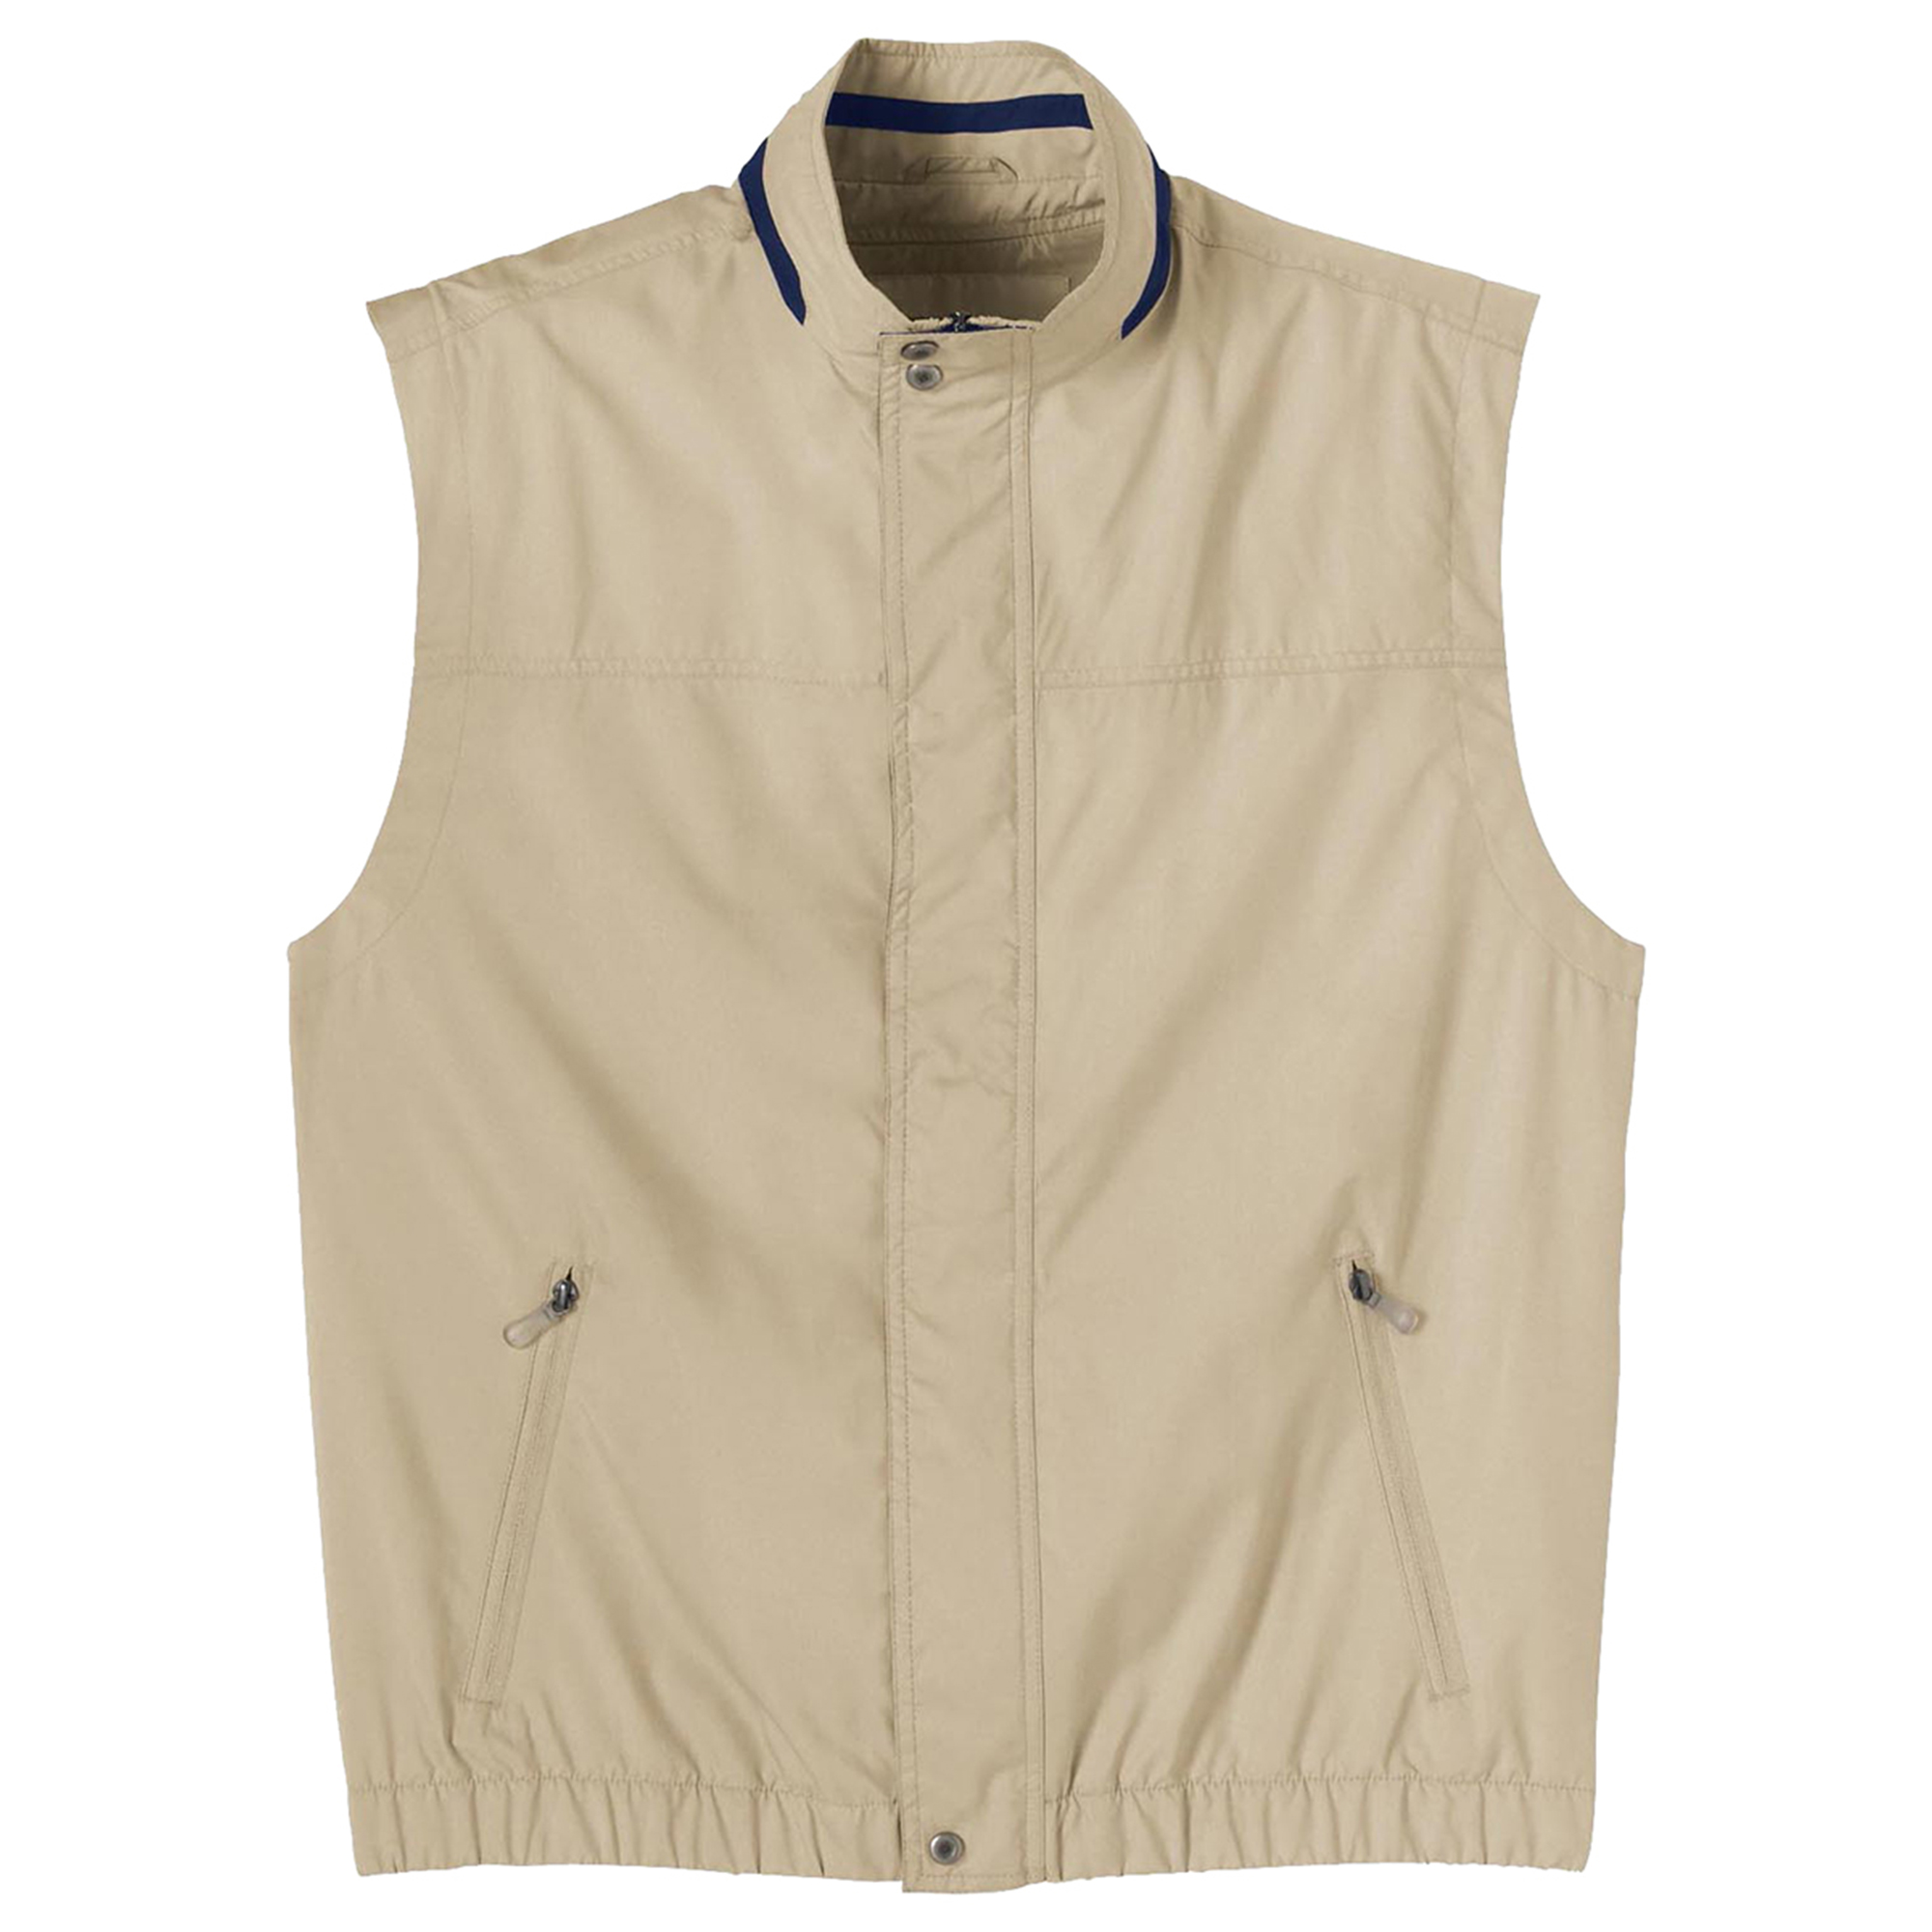 North End 88128 Men's Water Resistant Finish Full-Zip Lightweight Vest at Sears.com